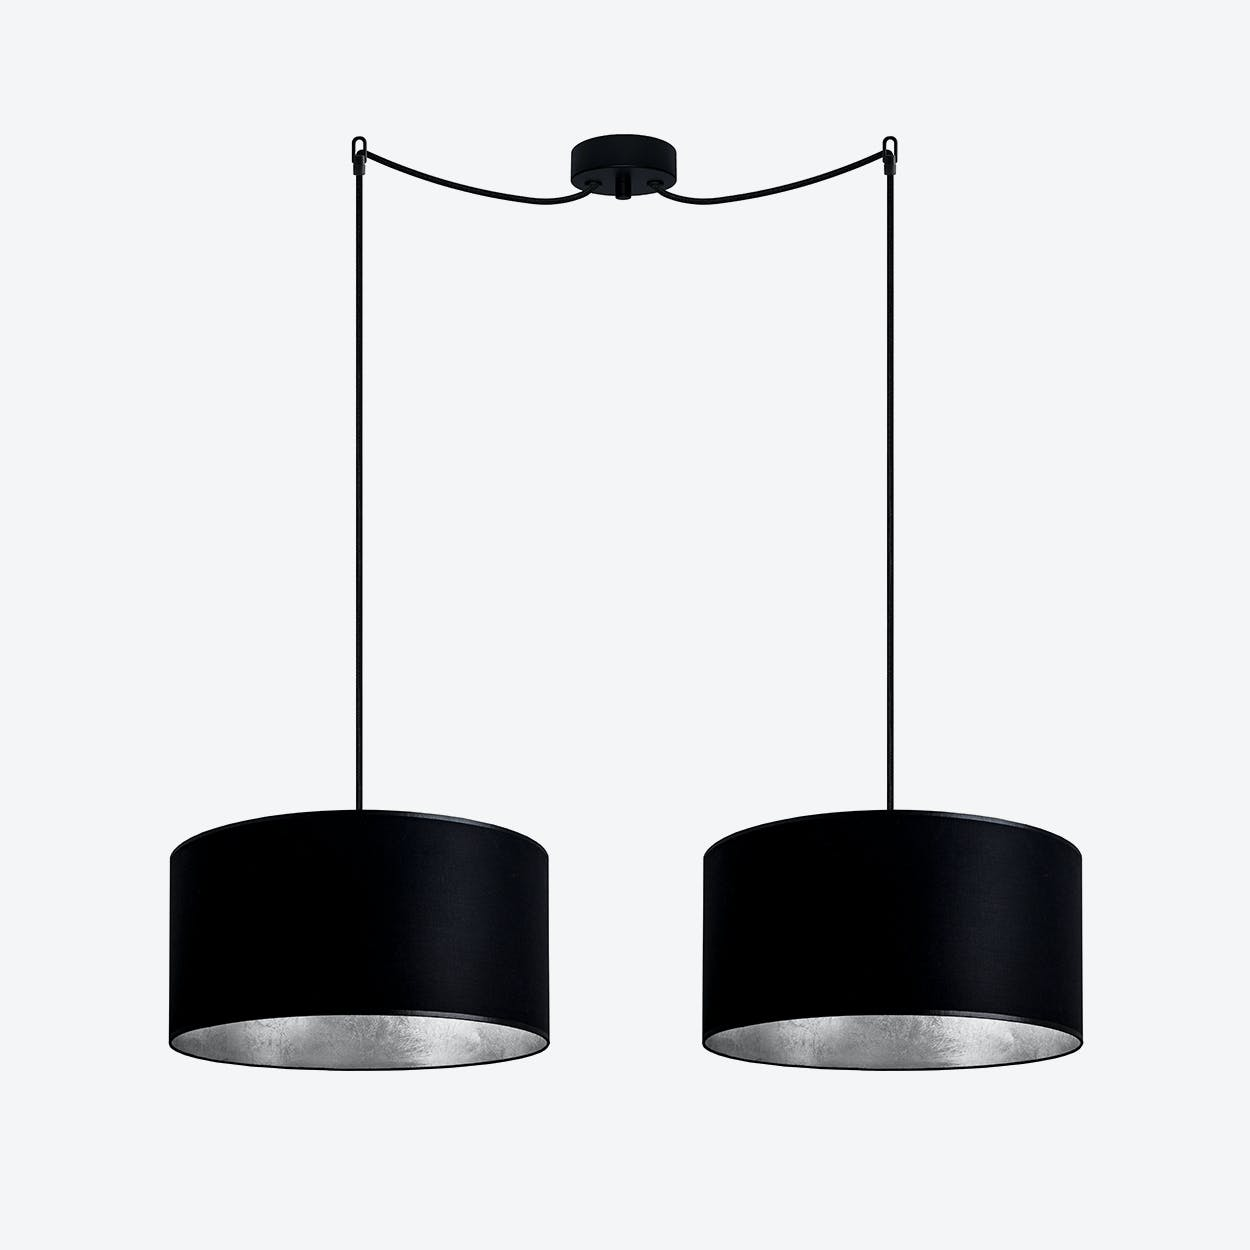 MIKA Medium Double Pendant Light in Black with Silver Leaf